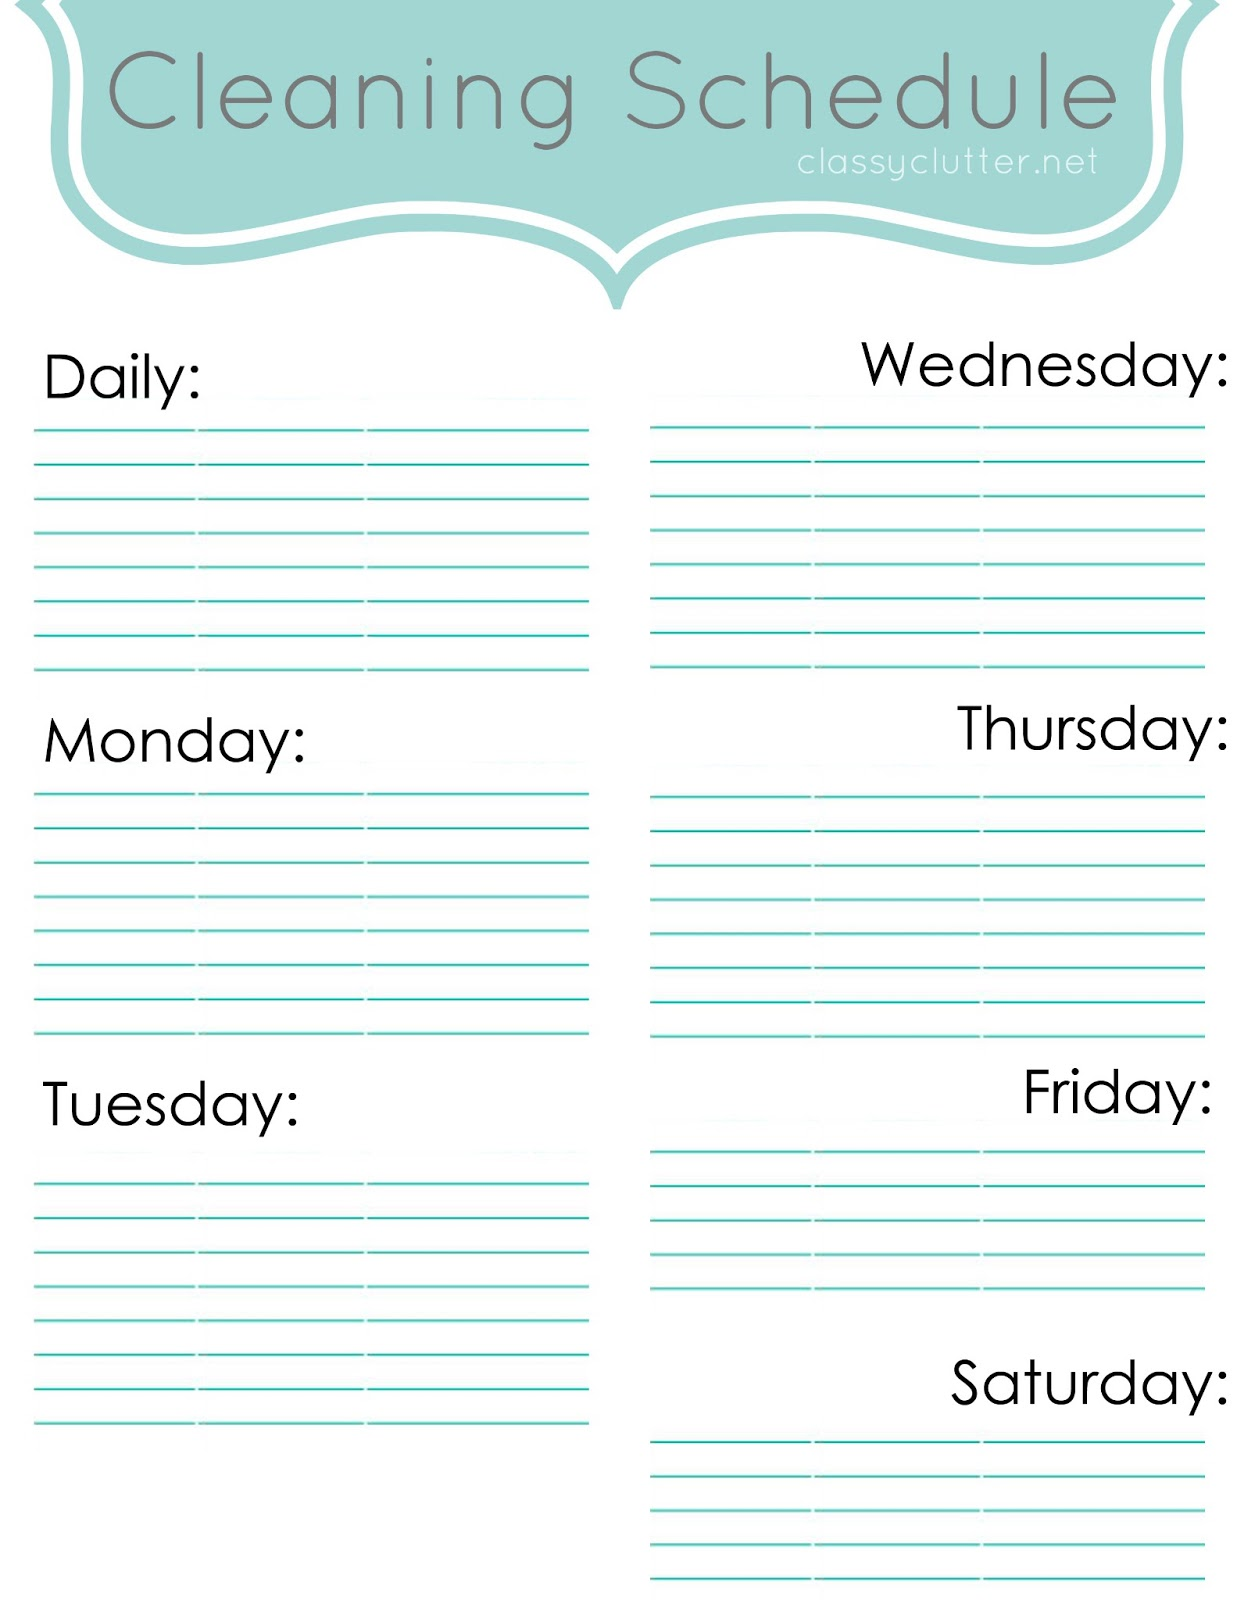 Weekly Cleaning Schedule Improve Your Cleaning Habits Classy Clutter